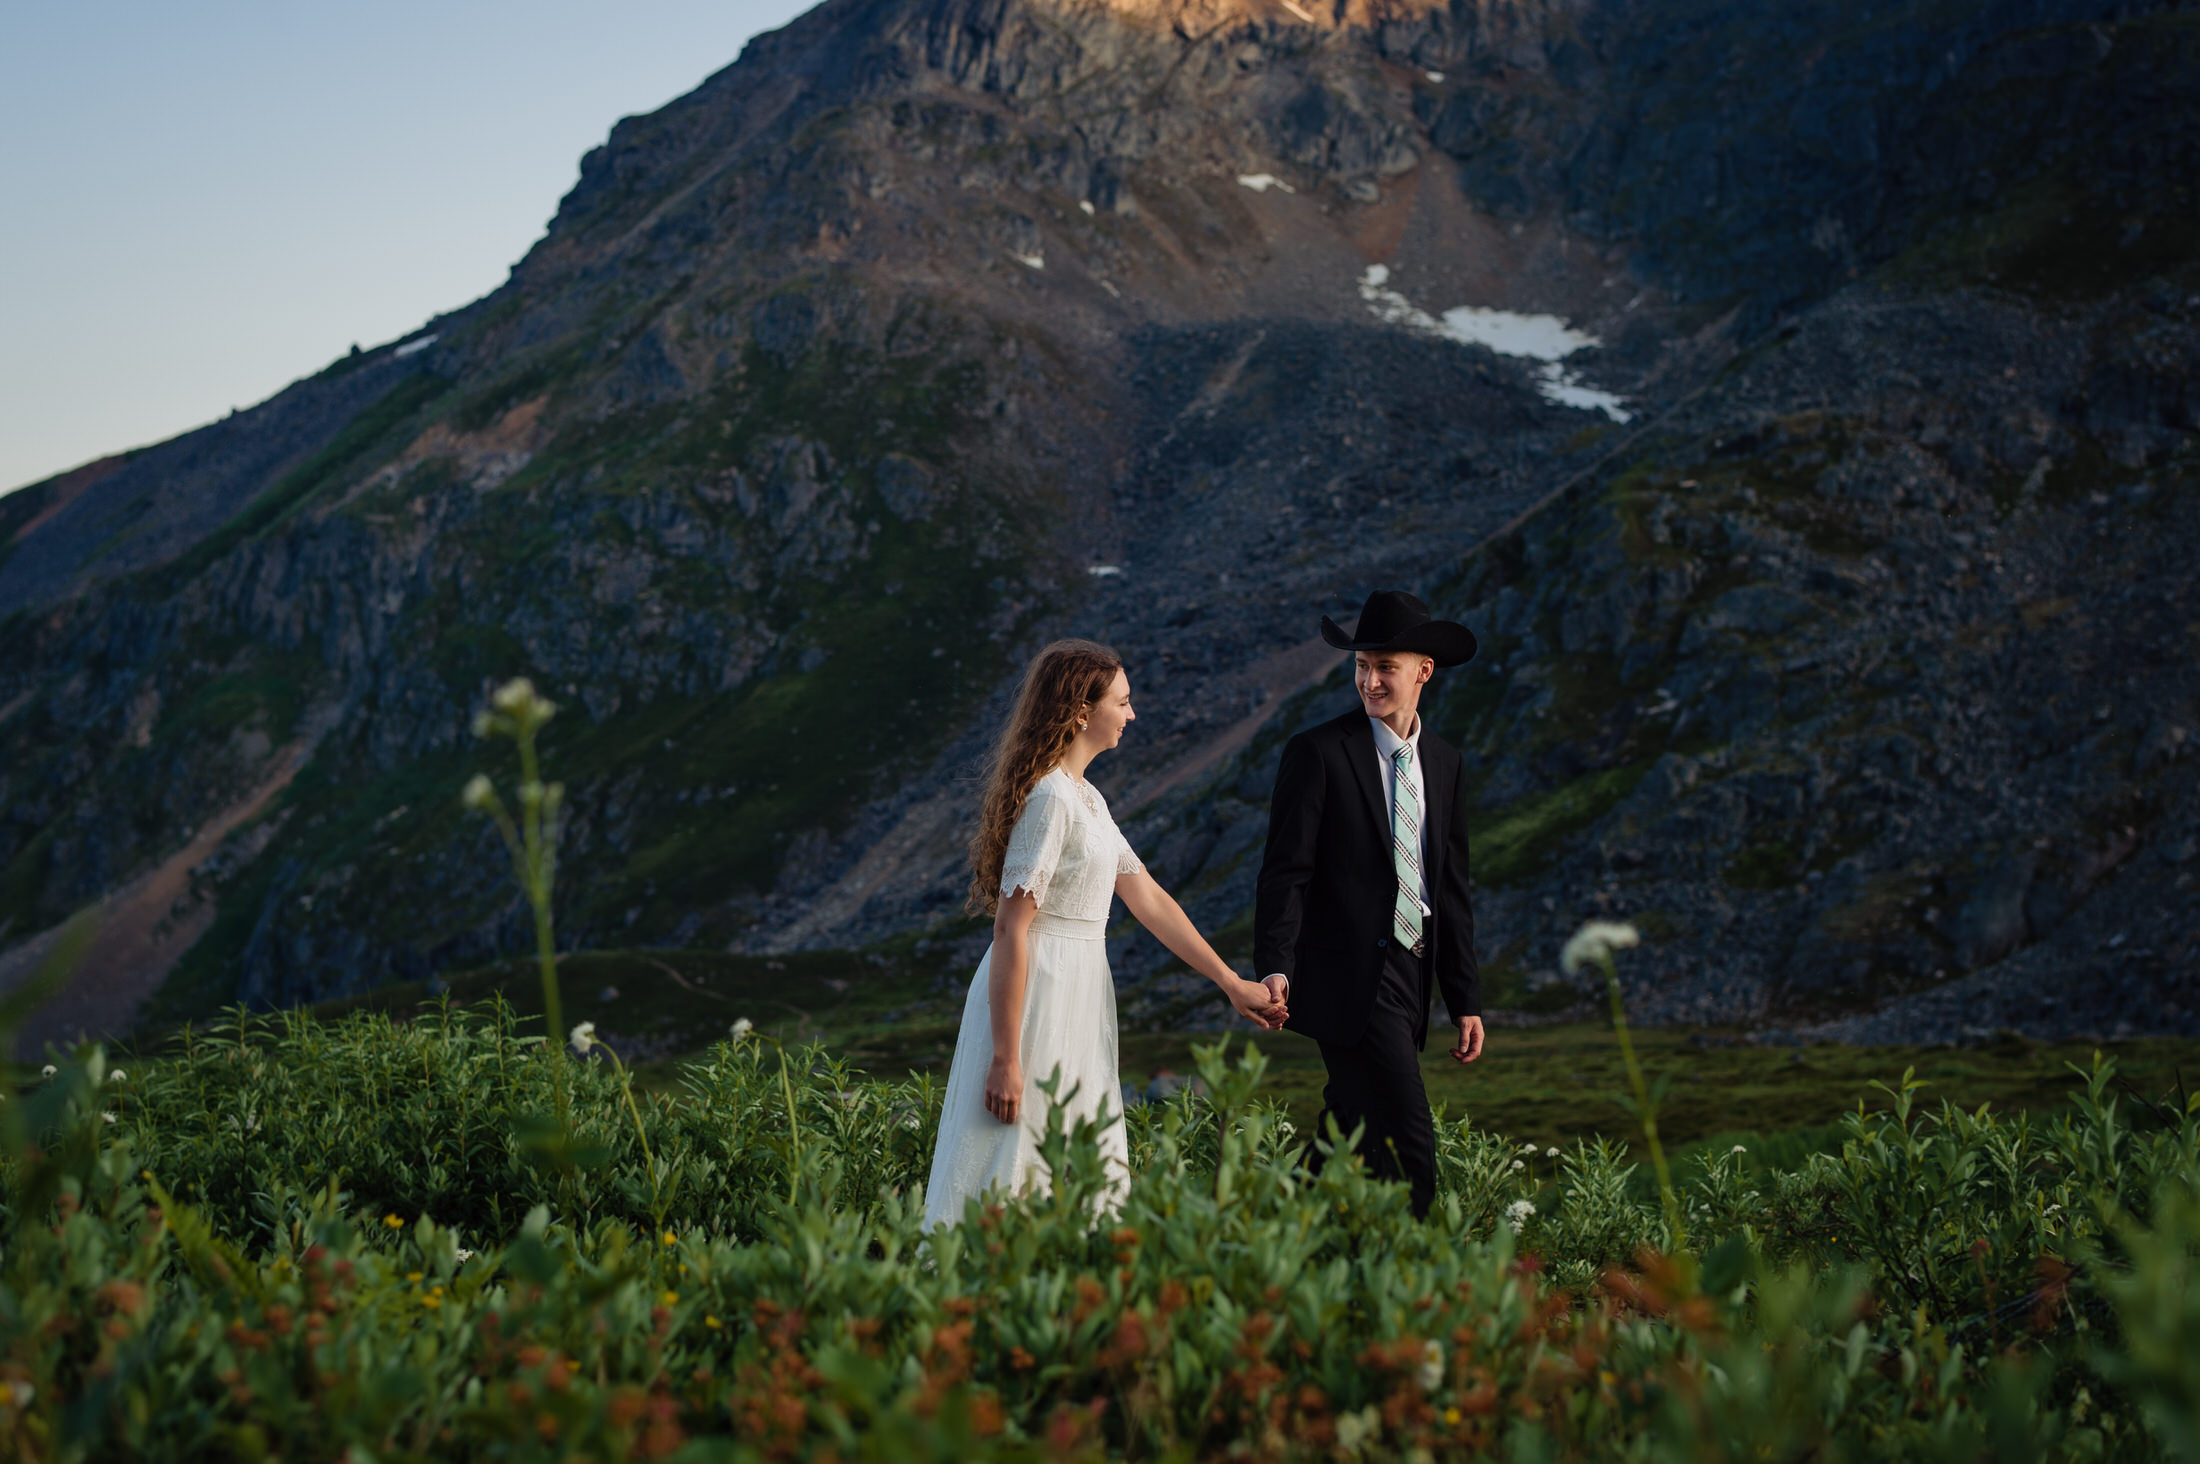 Hatcher pass wedding portrait photographer